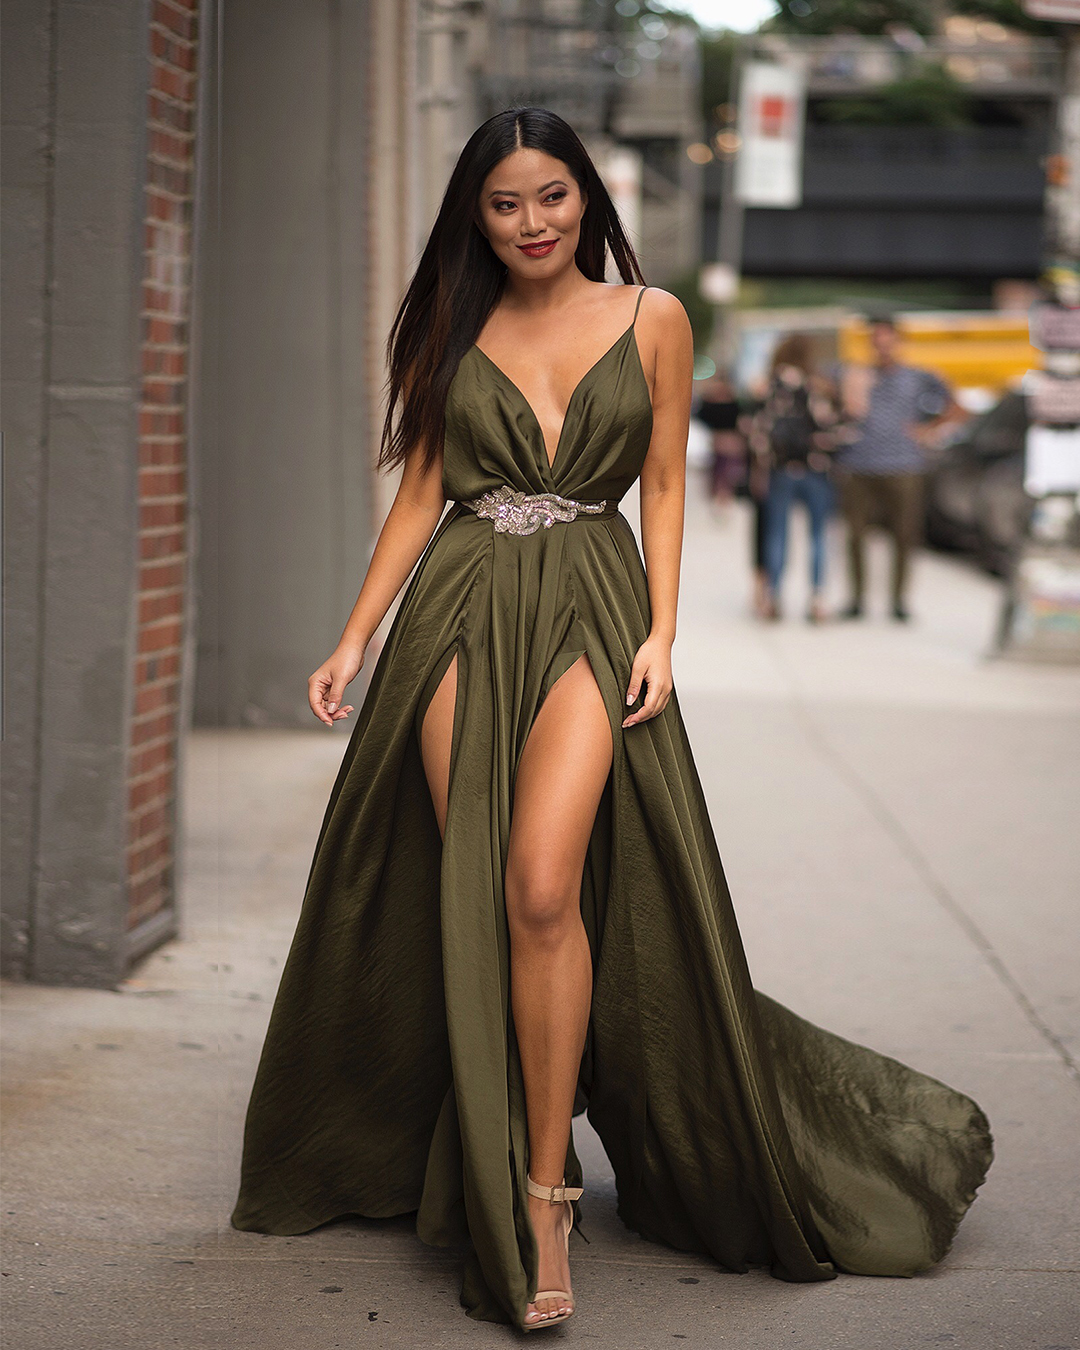 Ultimate Guide to Getting Invites to NYFW As an Influencer